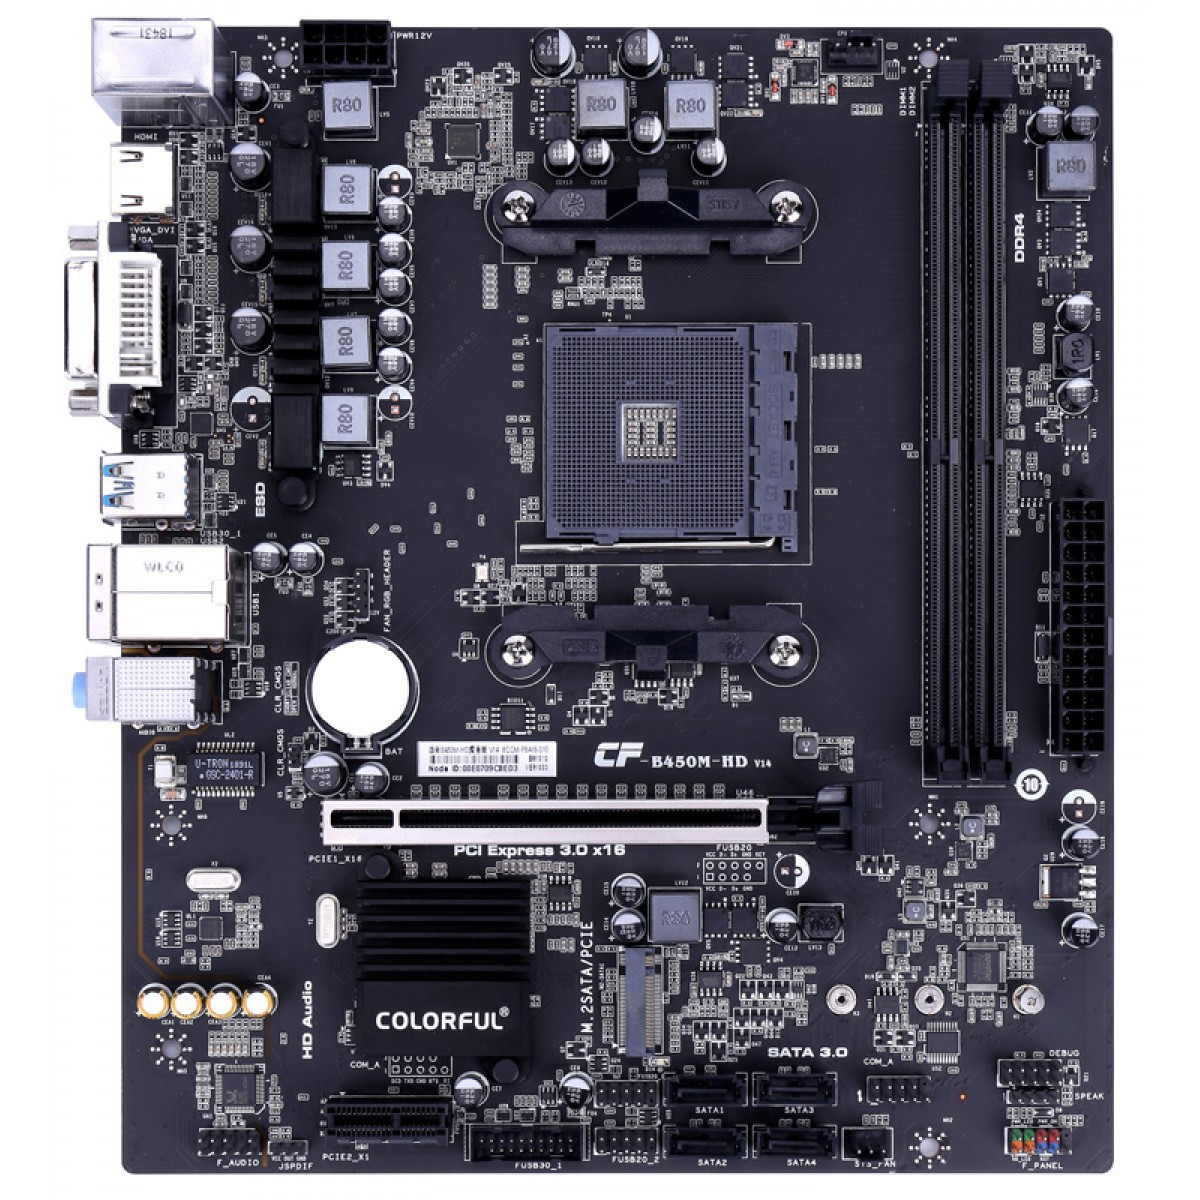 Placa Mãe Colorful Battle-AX B450M-HD V14, Chipset B450, AMD AM4, mATX, DDR4